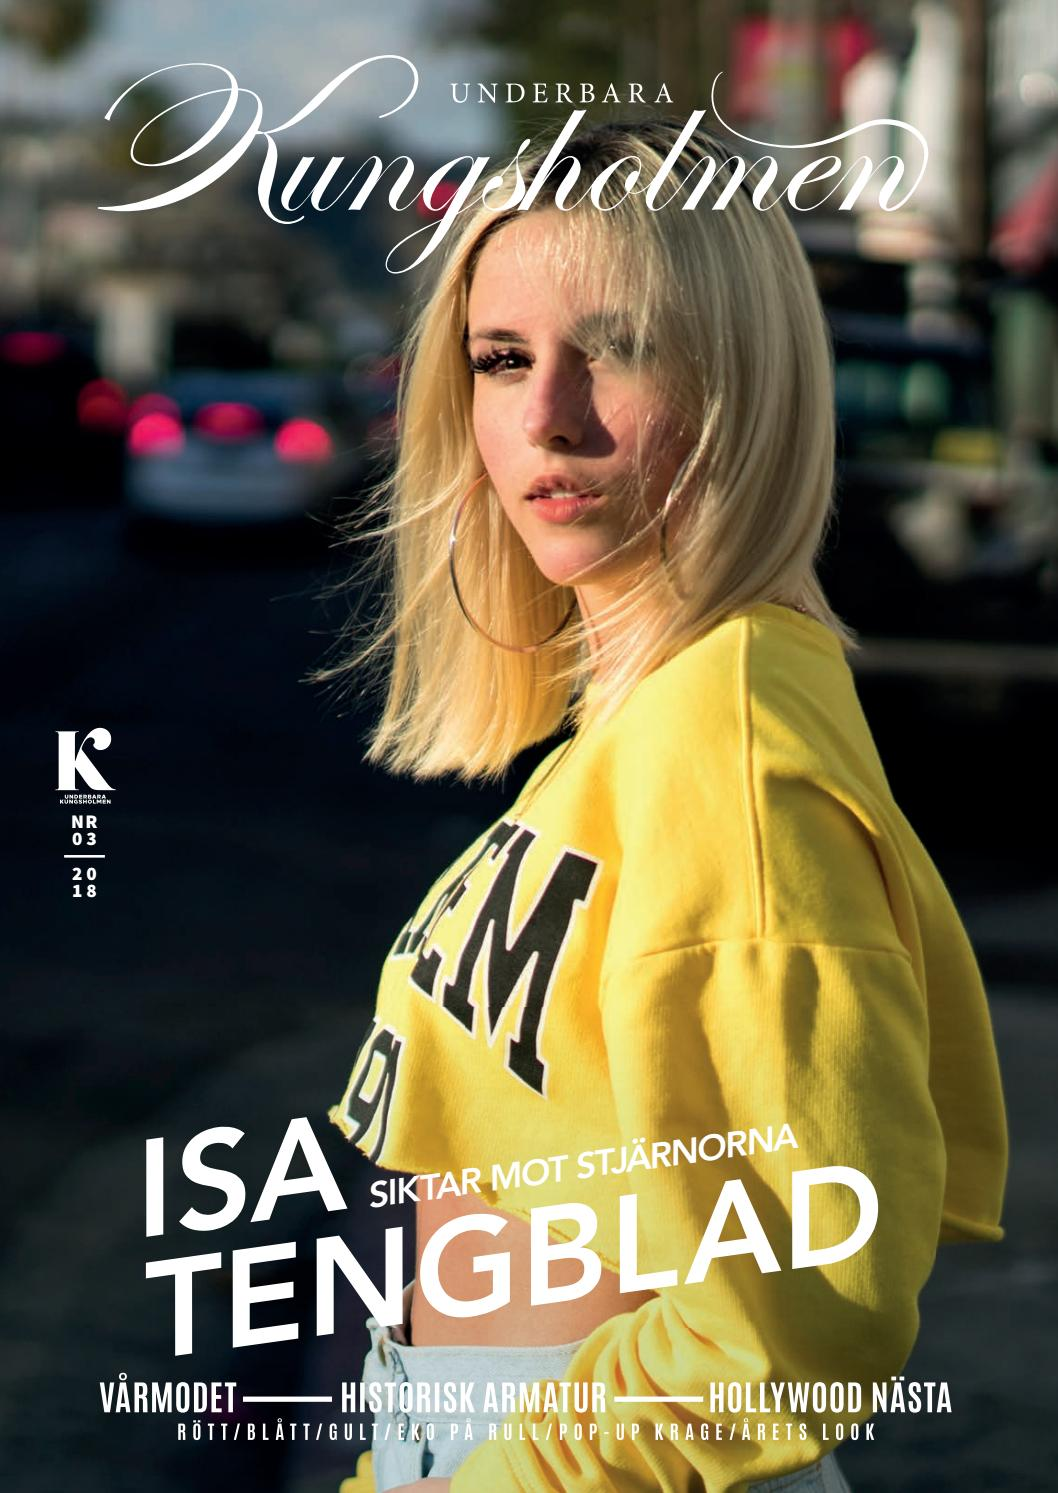 Underbara kungsholmen 2018 03 by Alm   Möller Royal Publishing Group AB -  issuu b414c21f01cd0